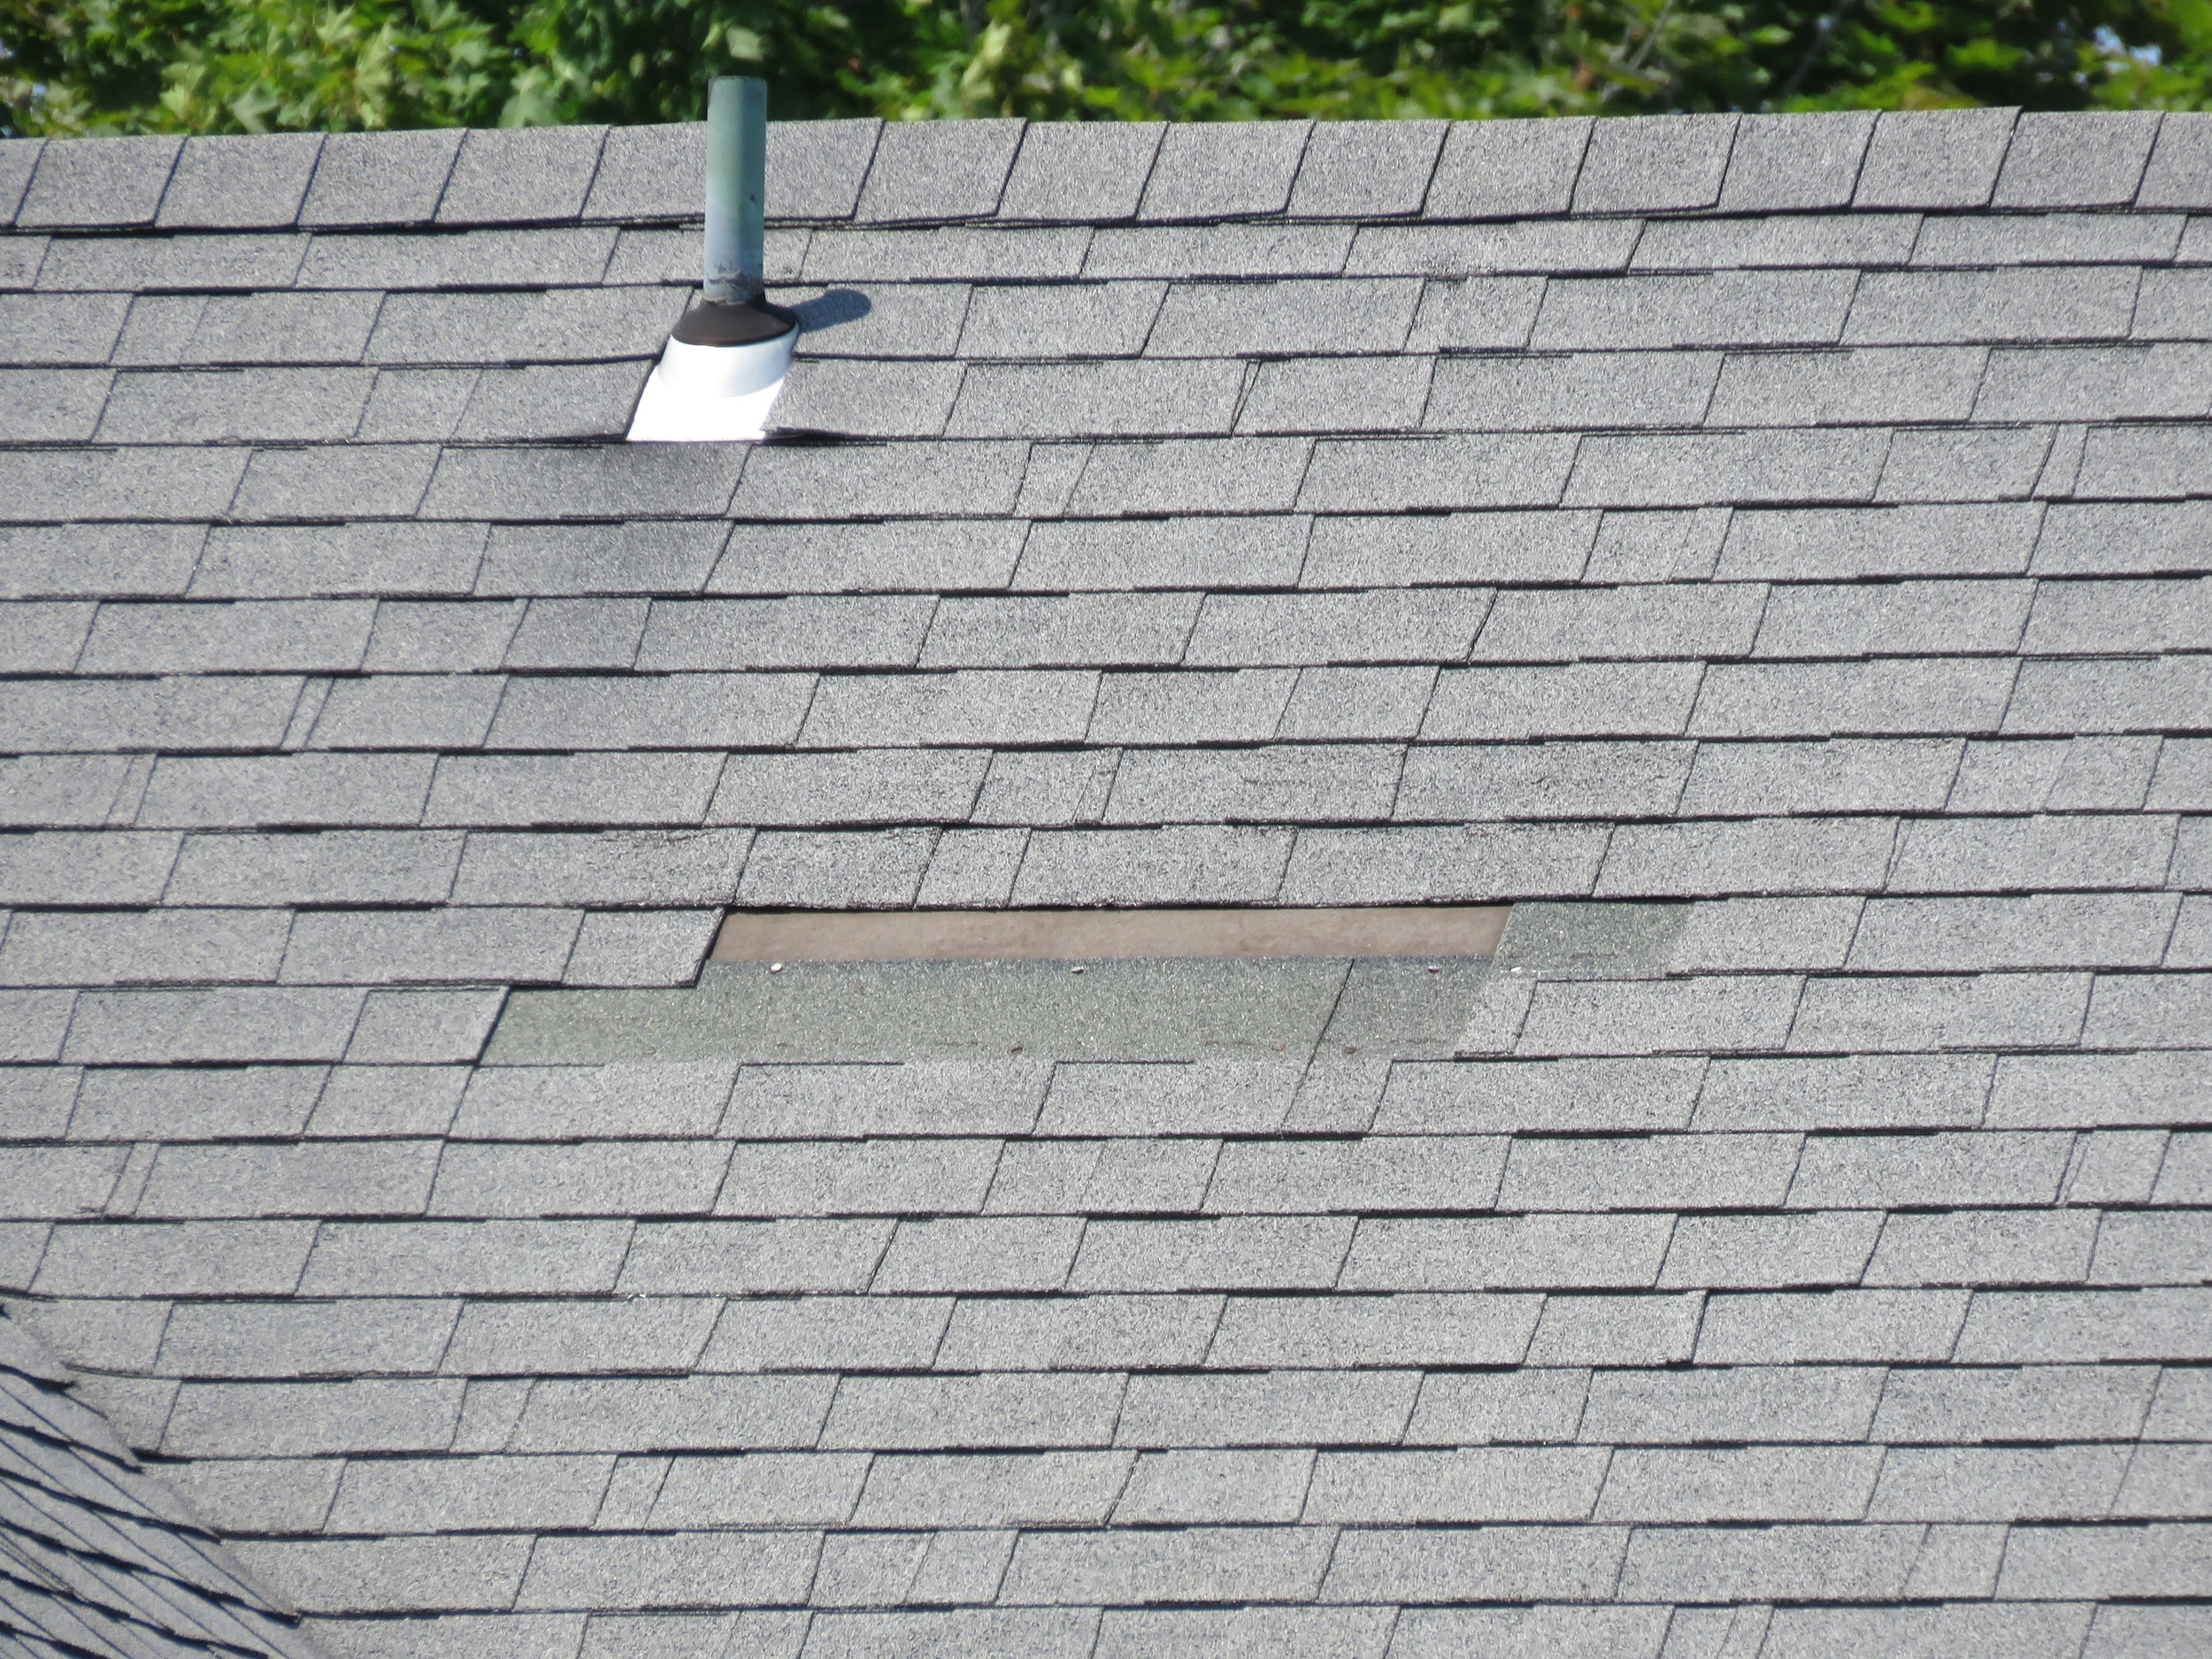 Roof Online - Missing Asphalt Shingle - Image 1.JPG